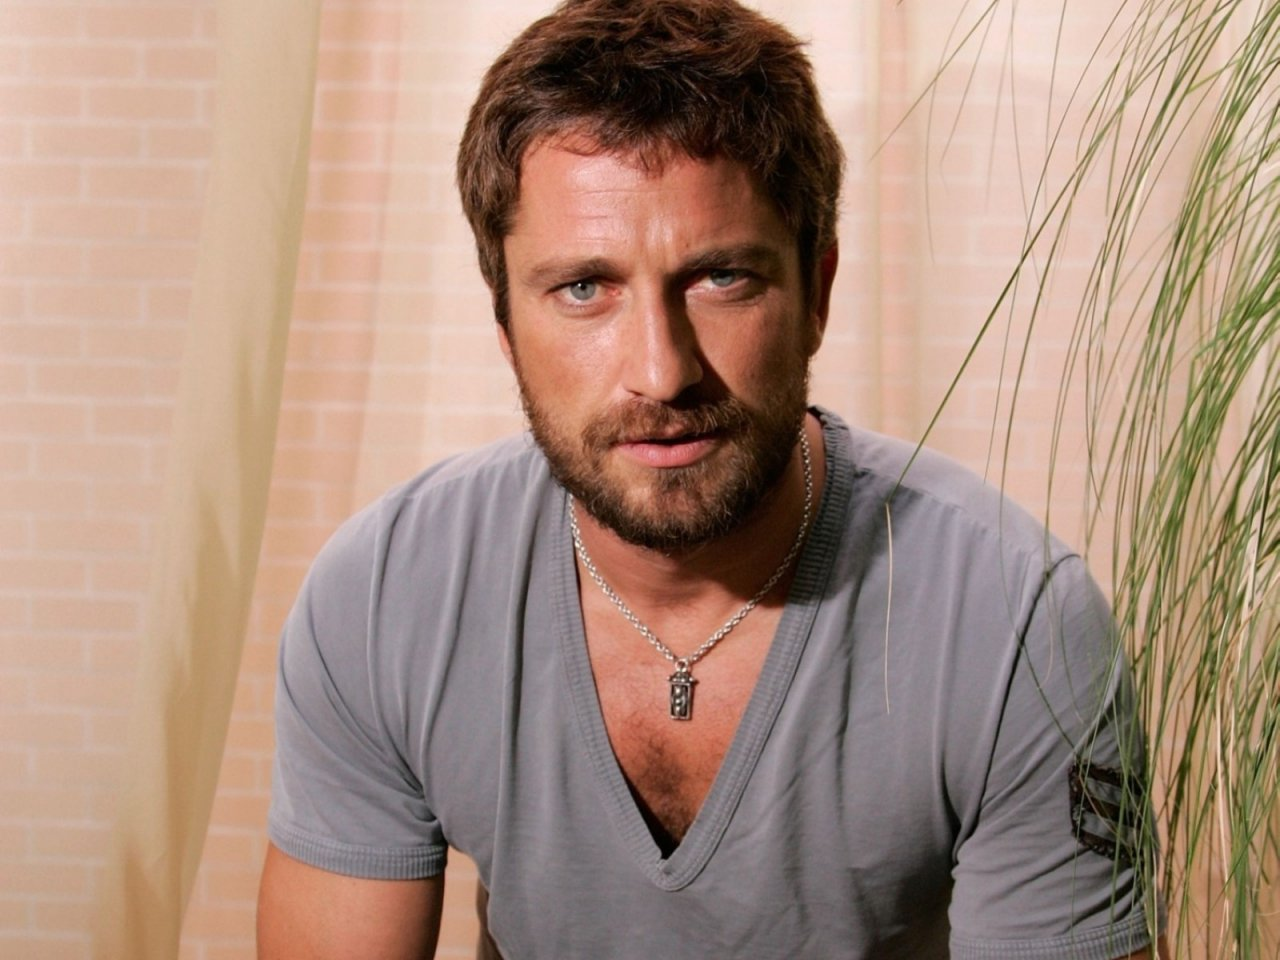 gerard butler 300 beard - photo #32